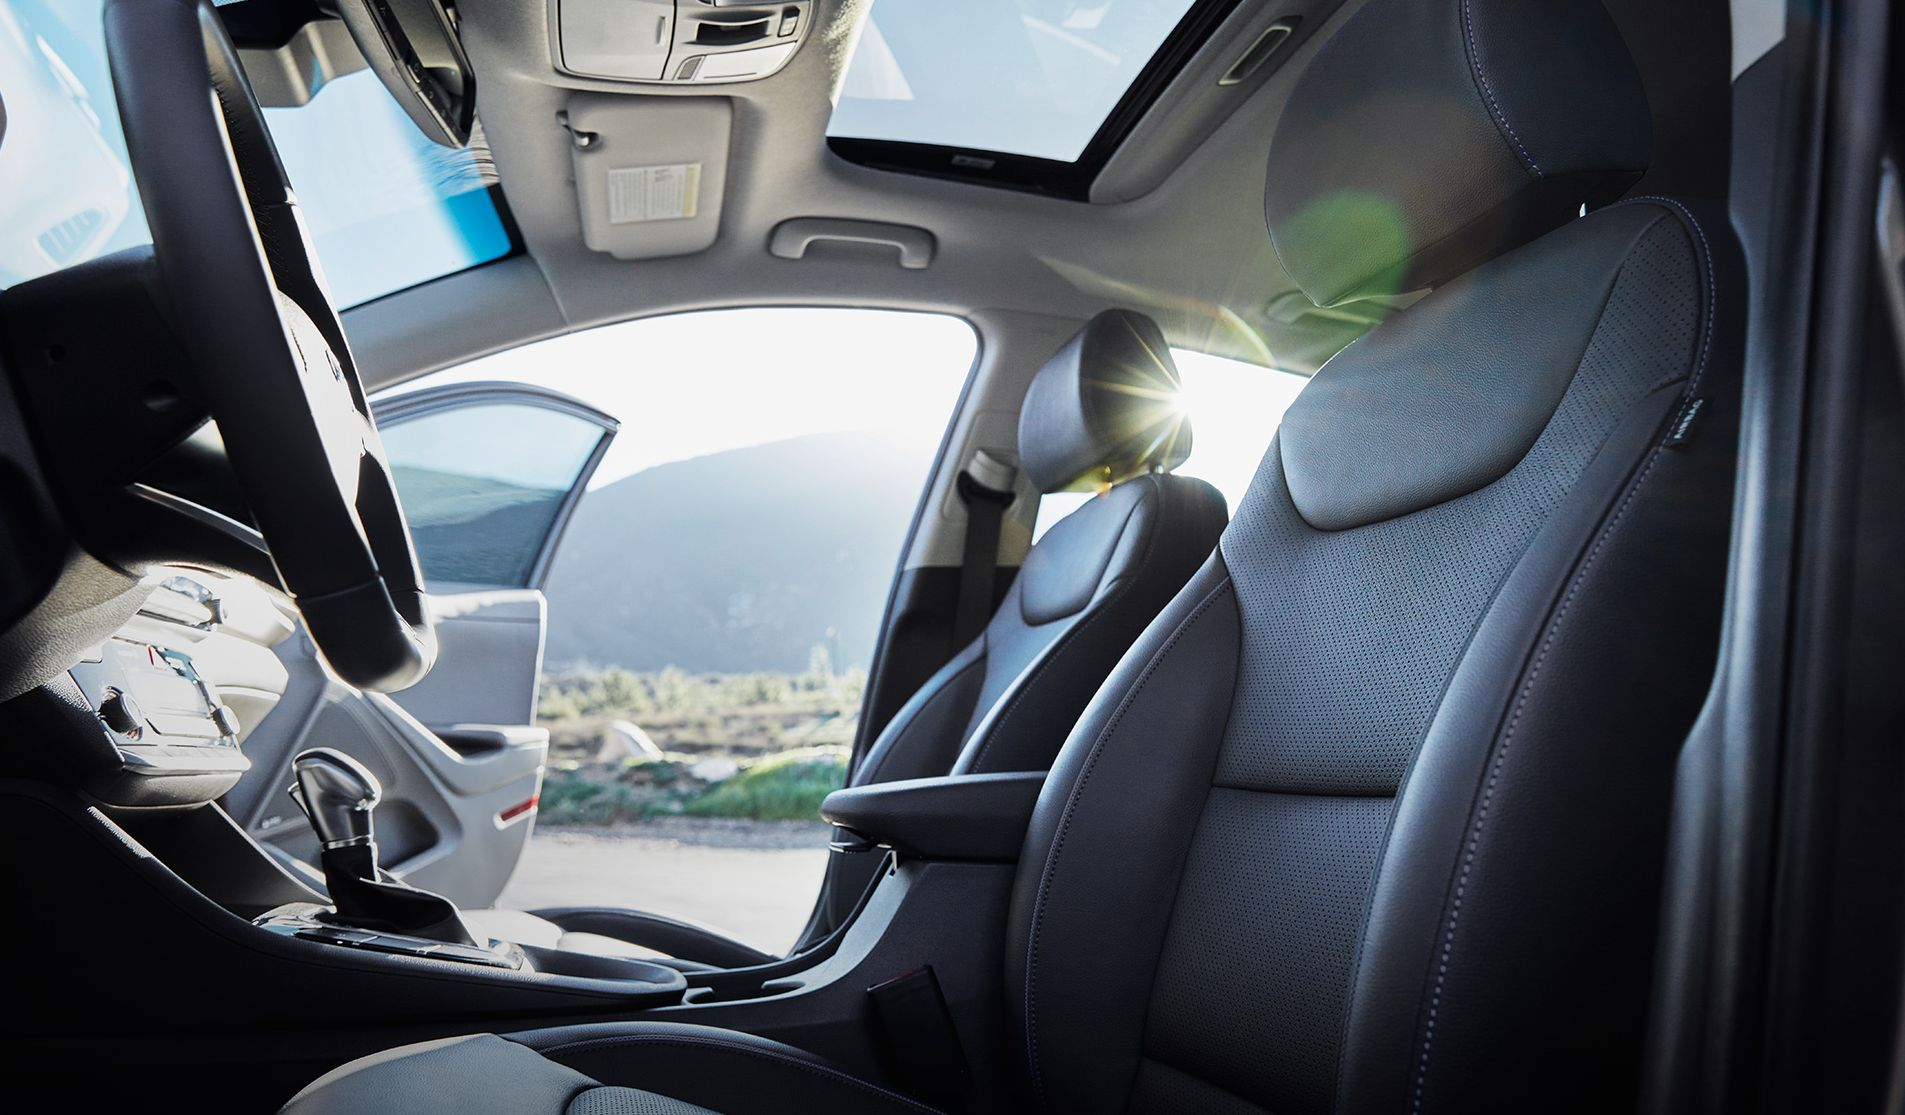 Comfortable Seating in the Hyundai Ioniq Hybrid